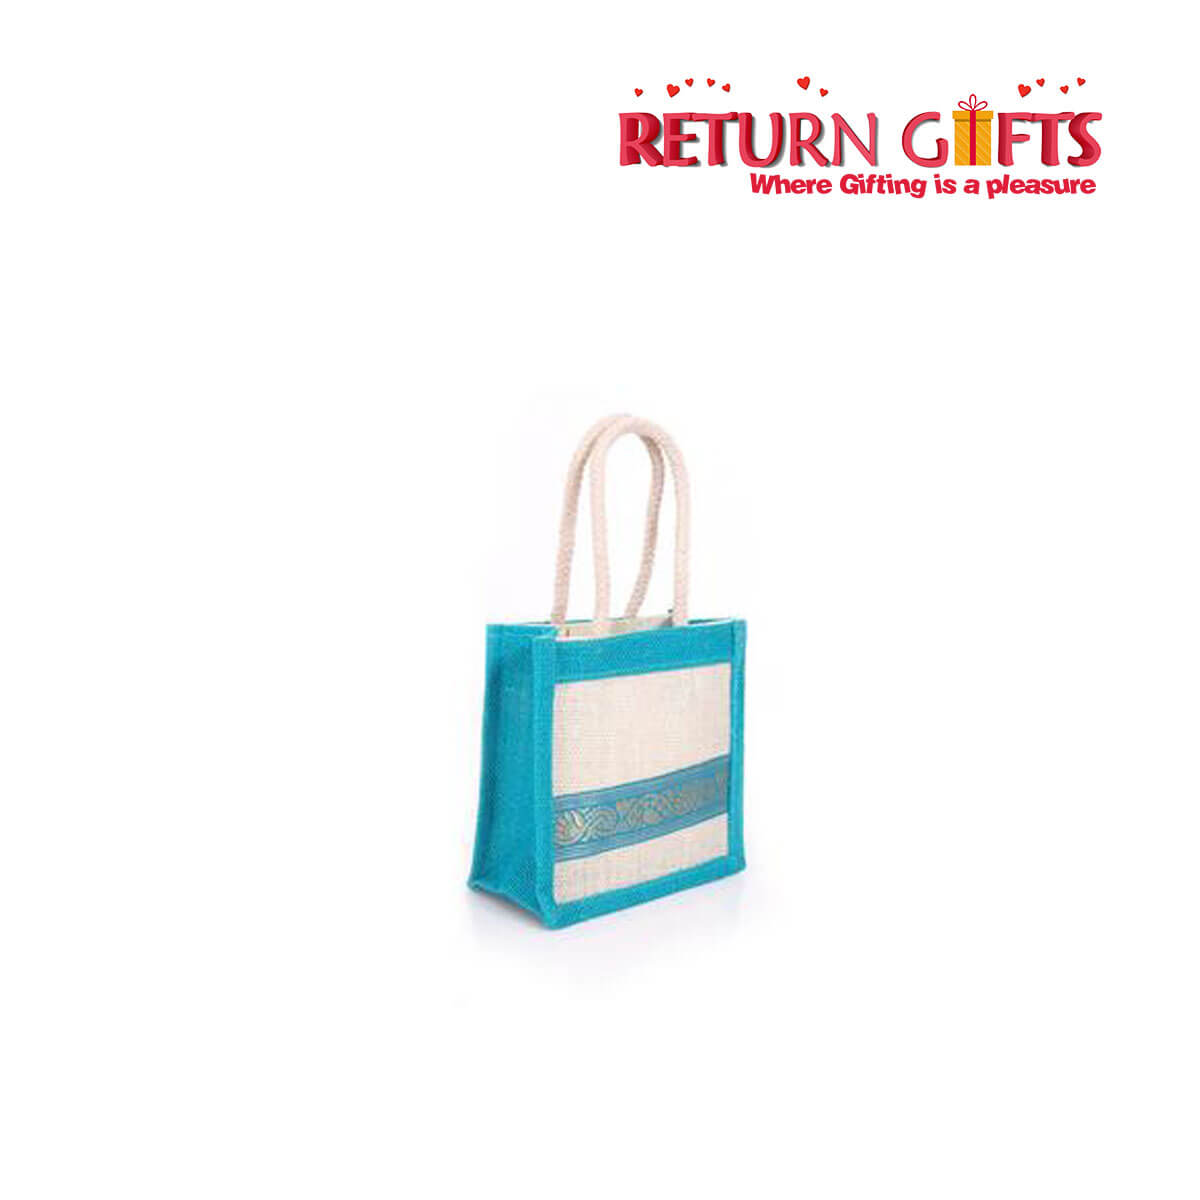 Return Gifts For Anniversary Archives - Returngifts For Marriage ...